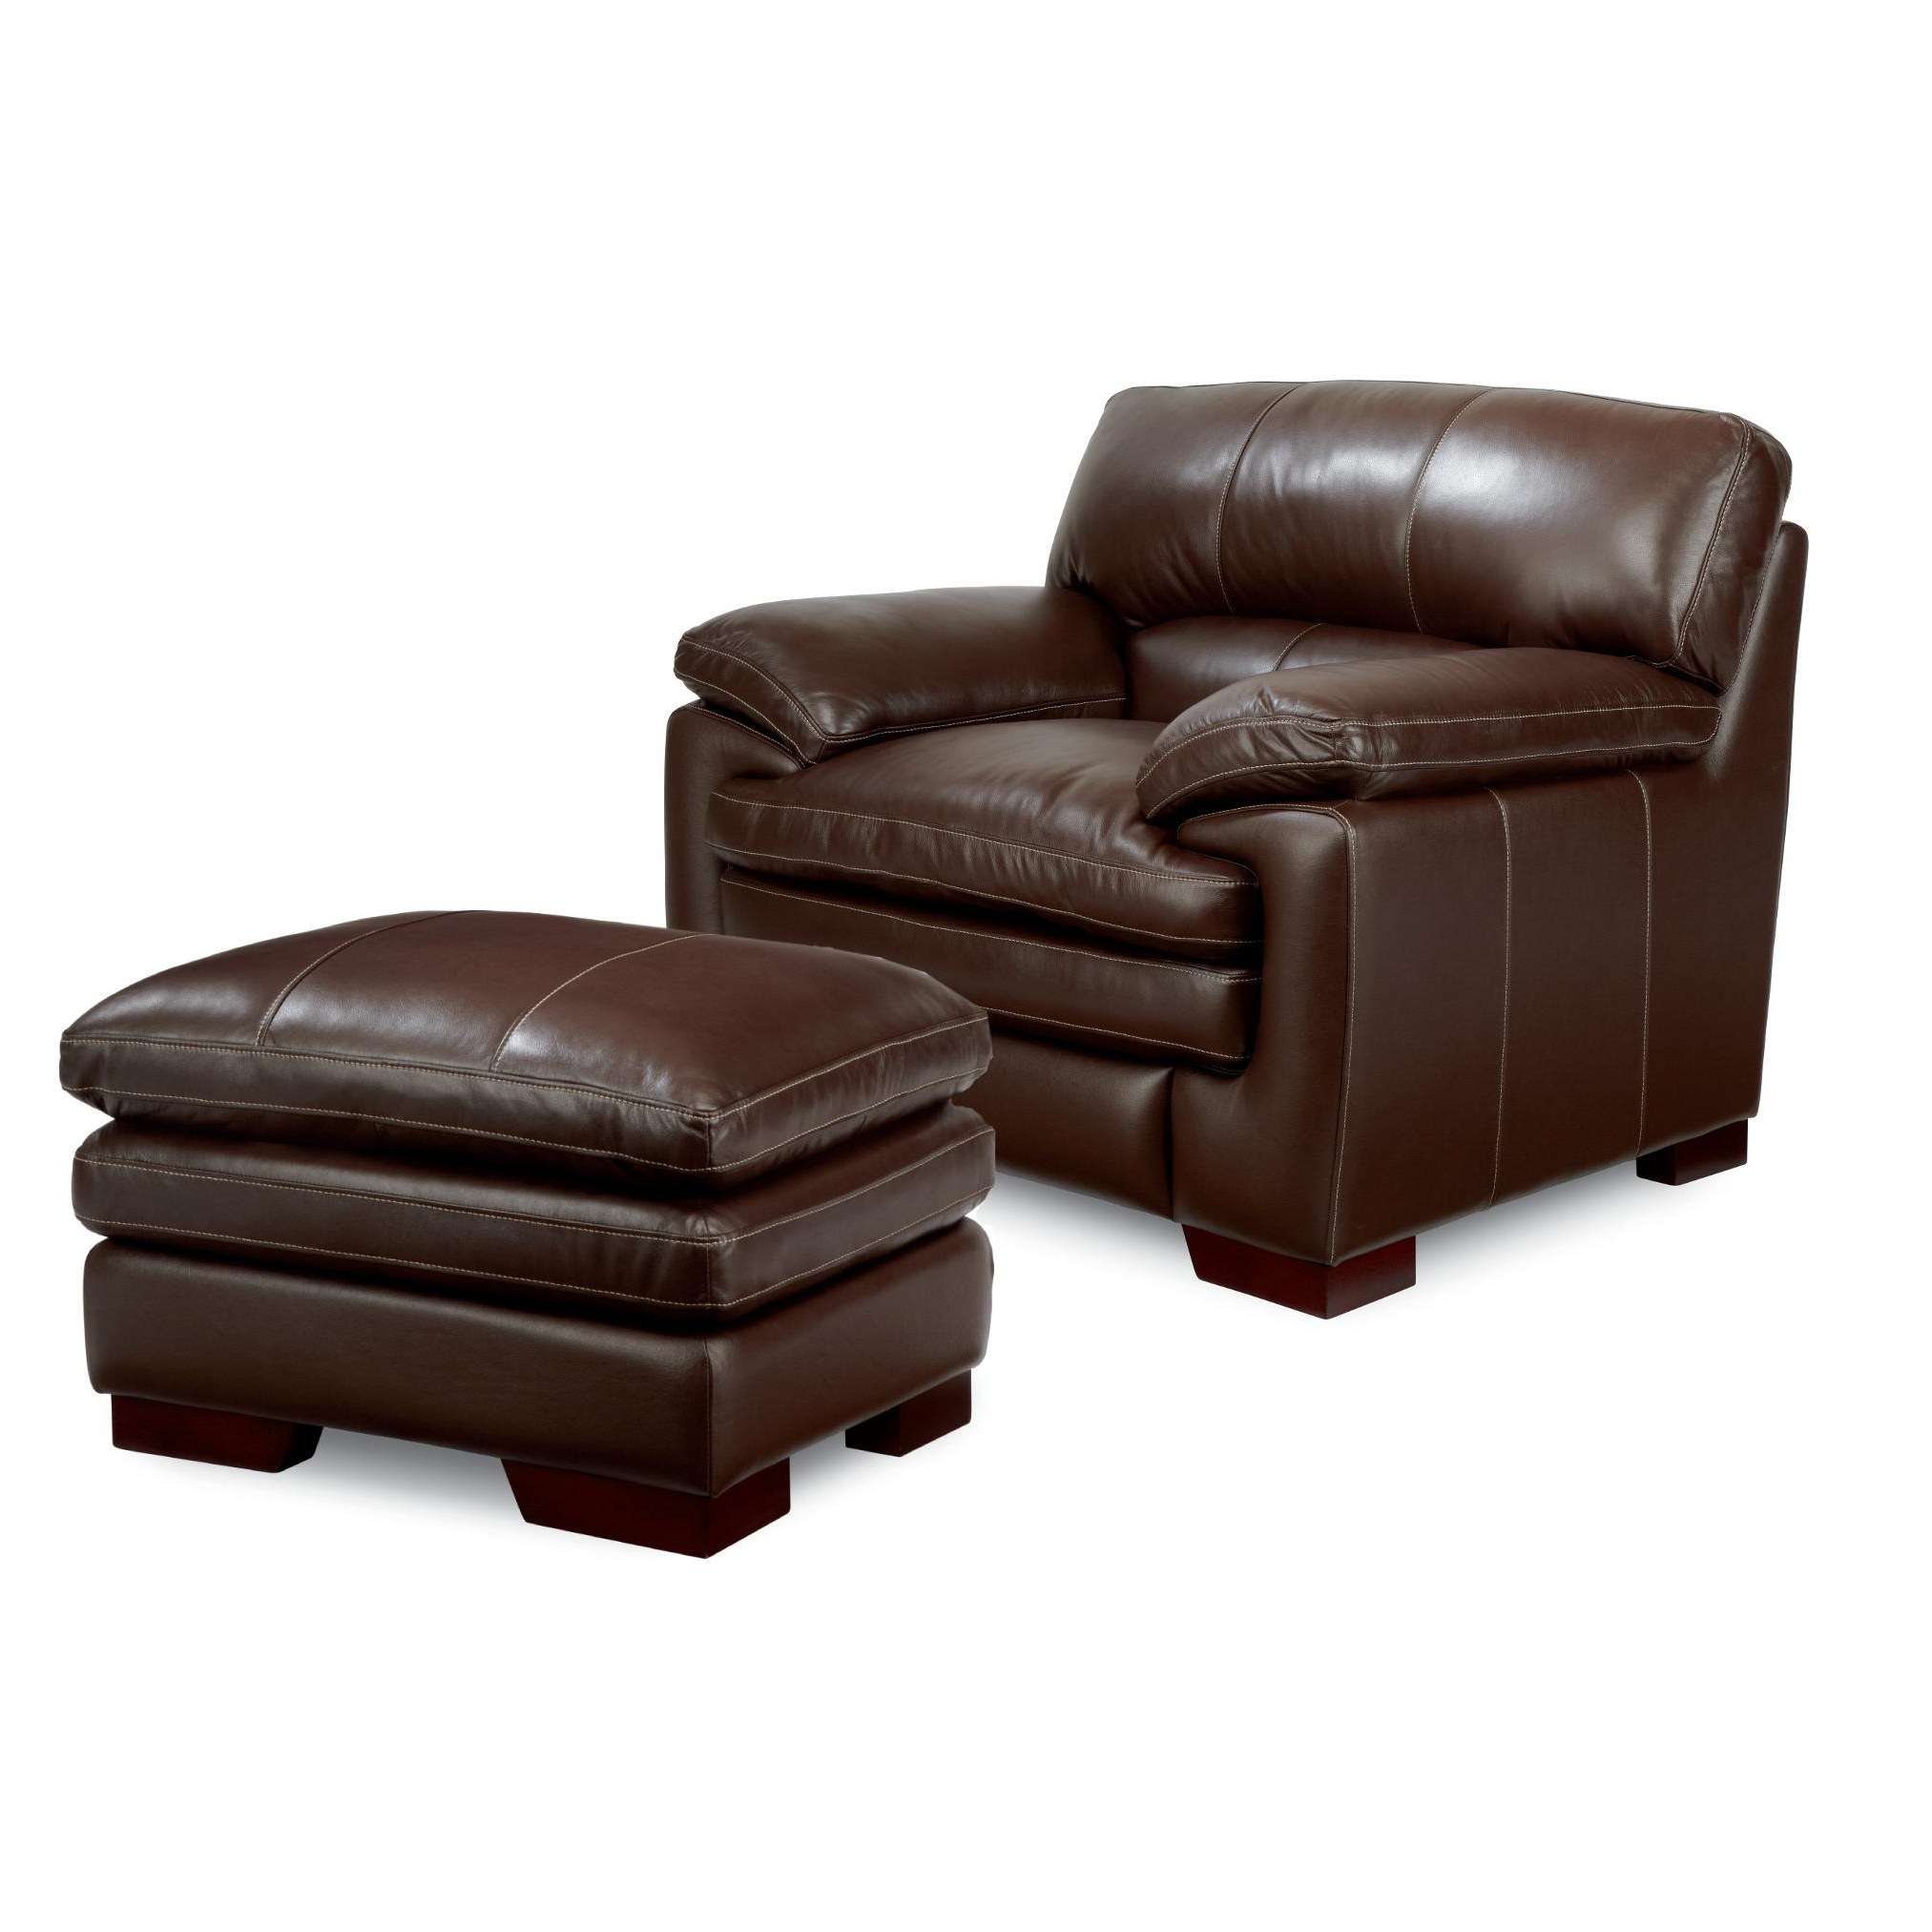 Most Up To Date Sofa Chair And Ottoman Intended For La Z Boy Dexter Casual Upholstered Stationary Chair And Ottoman Set (View 13 of 20)